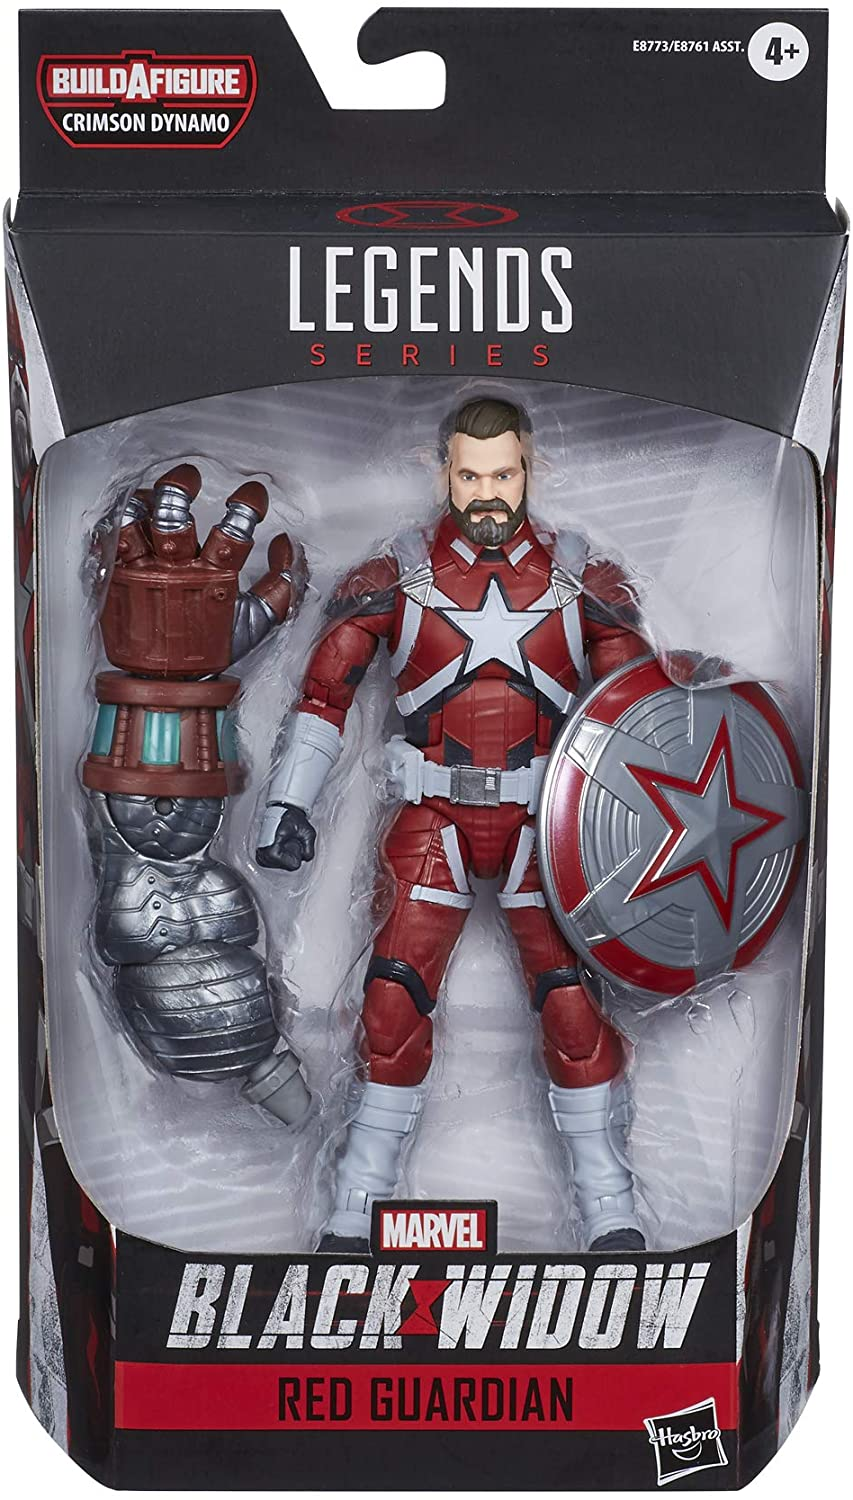 Marvel Hasbro Black Widow Legends Series 6-inch Collectible Red Guardian Action Figure